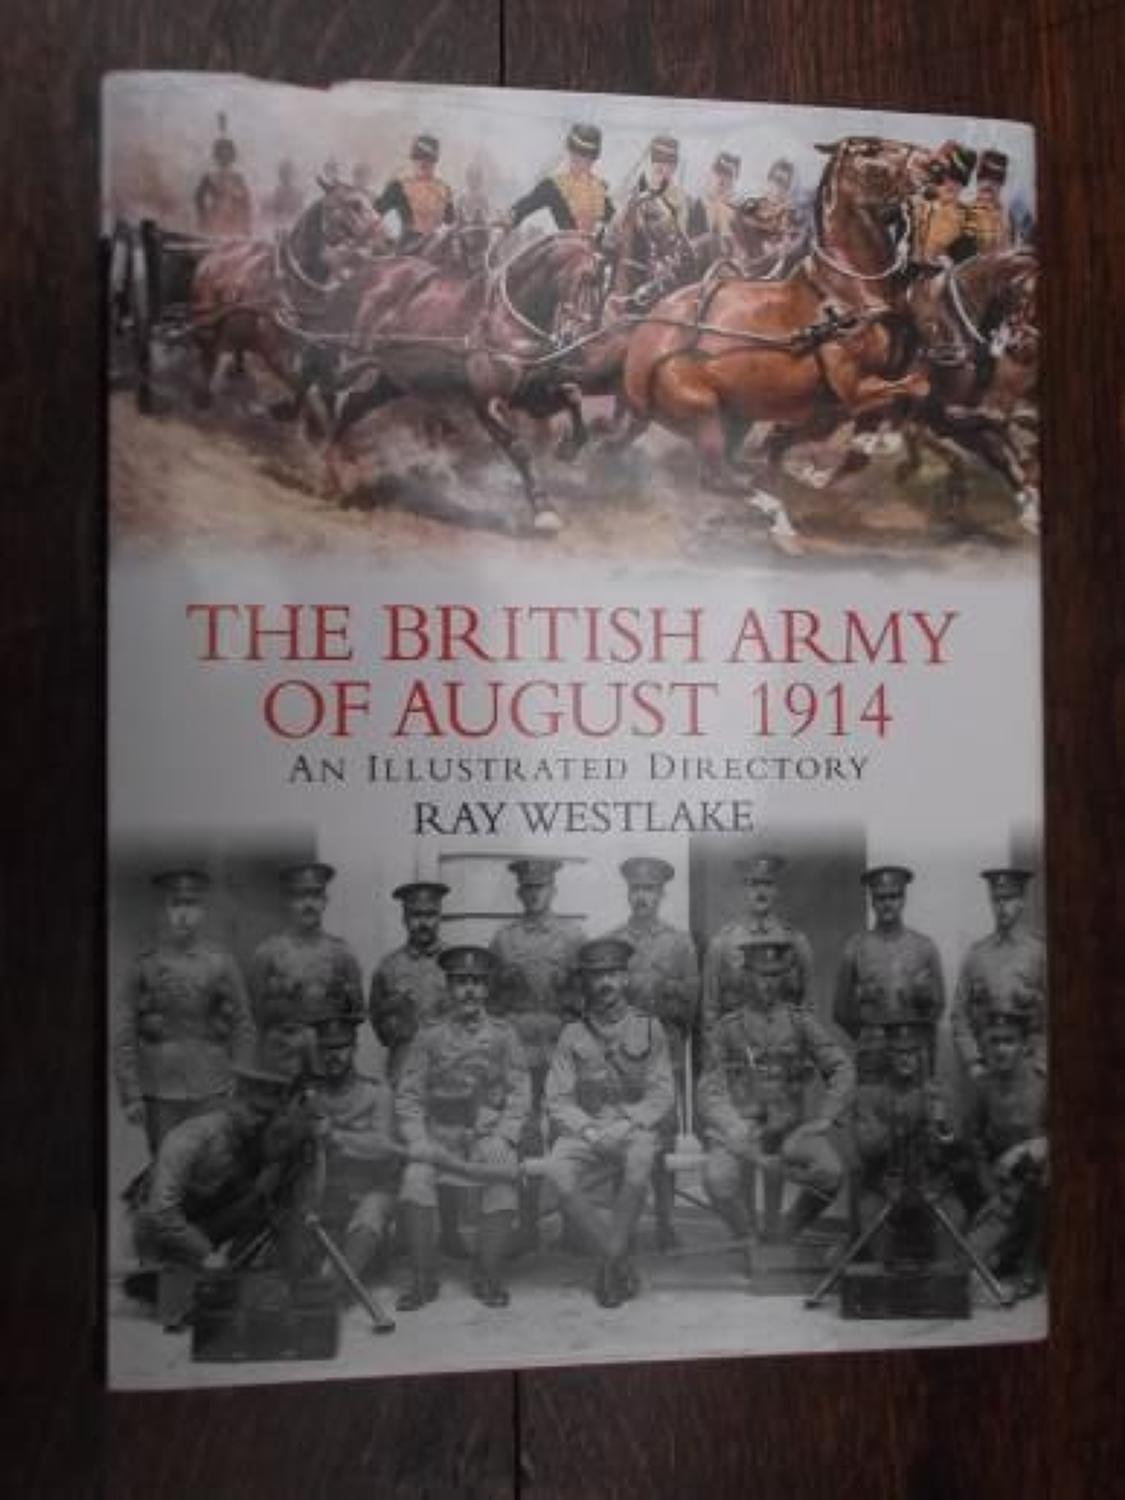 THE BRITISH ARMY OF AUGUST 1914: RAY WESTLAKE